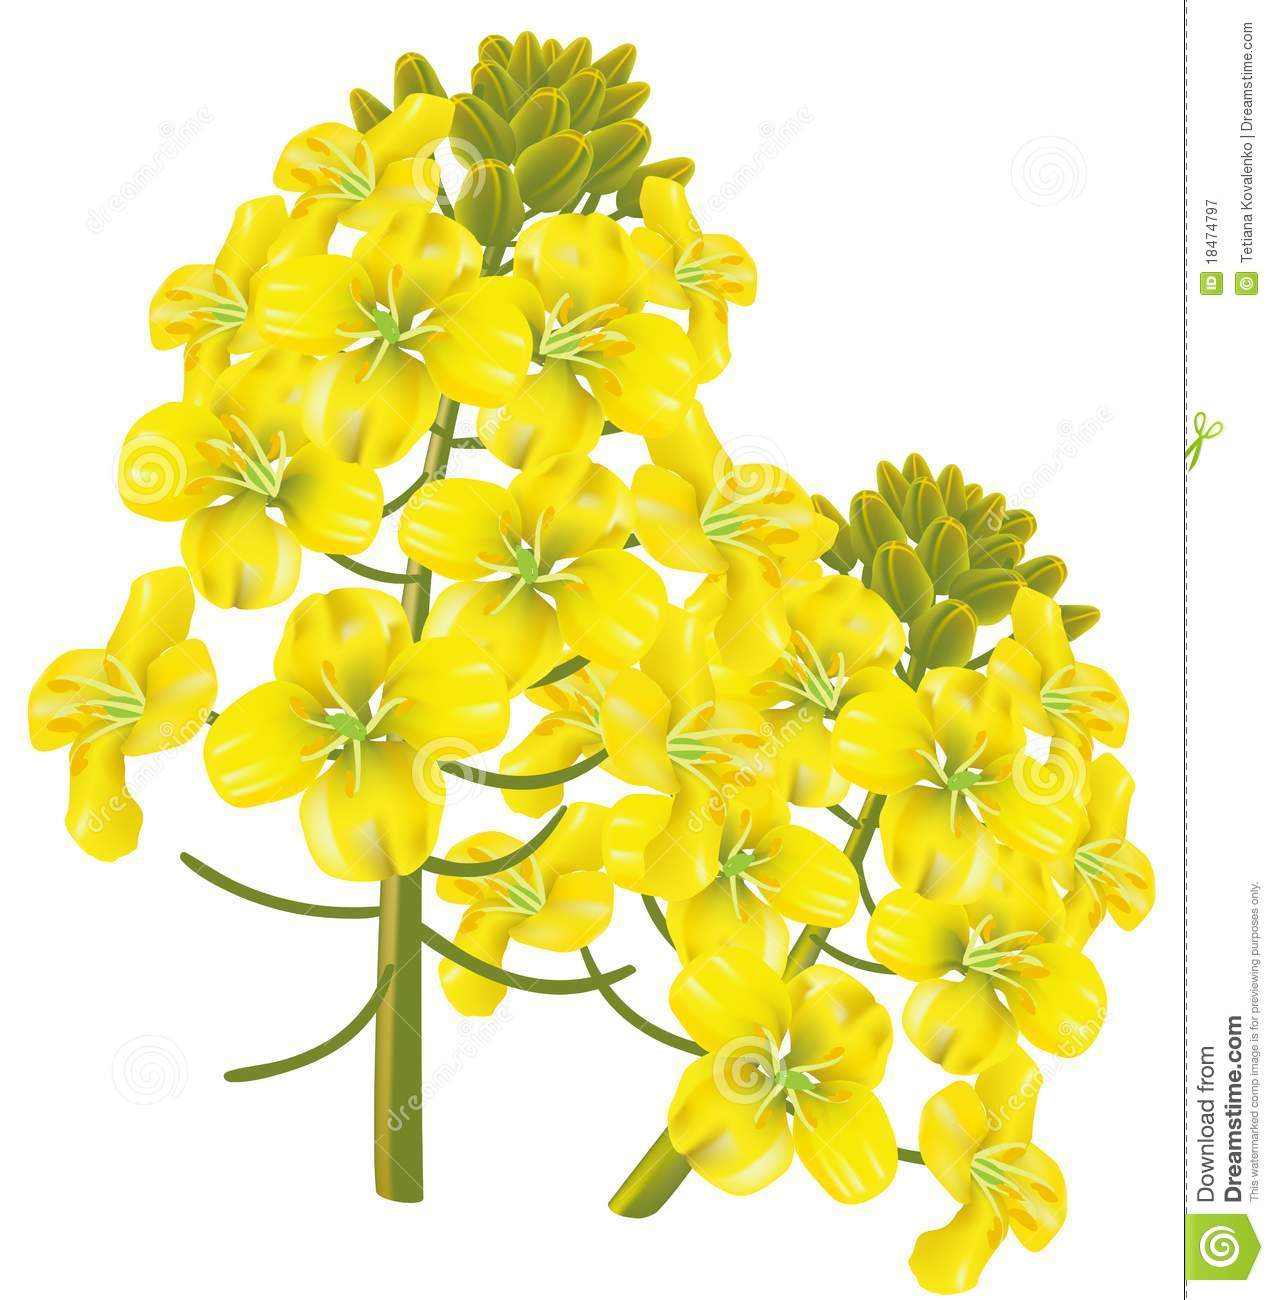 Rapeseed clipart #18, Download drawings